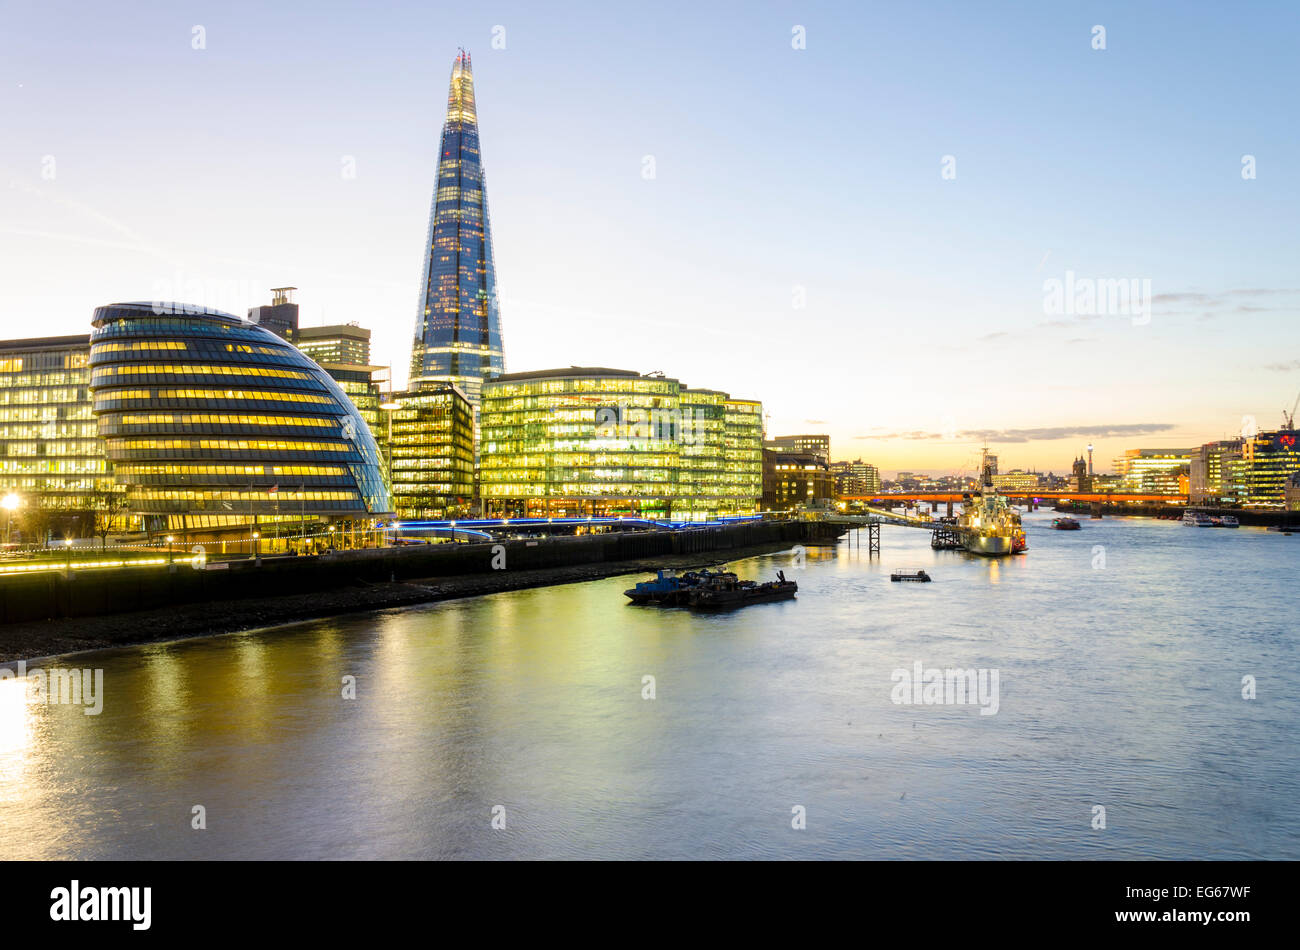 London, UK 17th February 2015: A clear evening sky over the capital will mean that overnight temperatures could - Stock Image